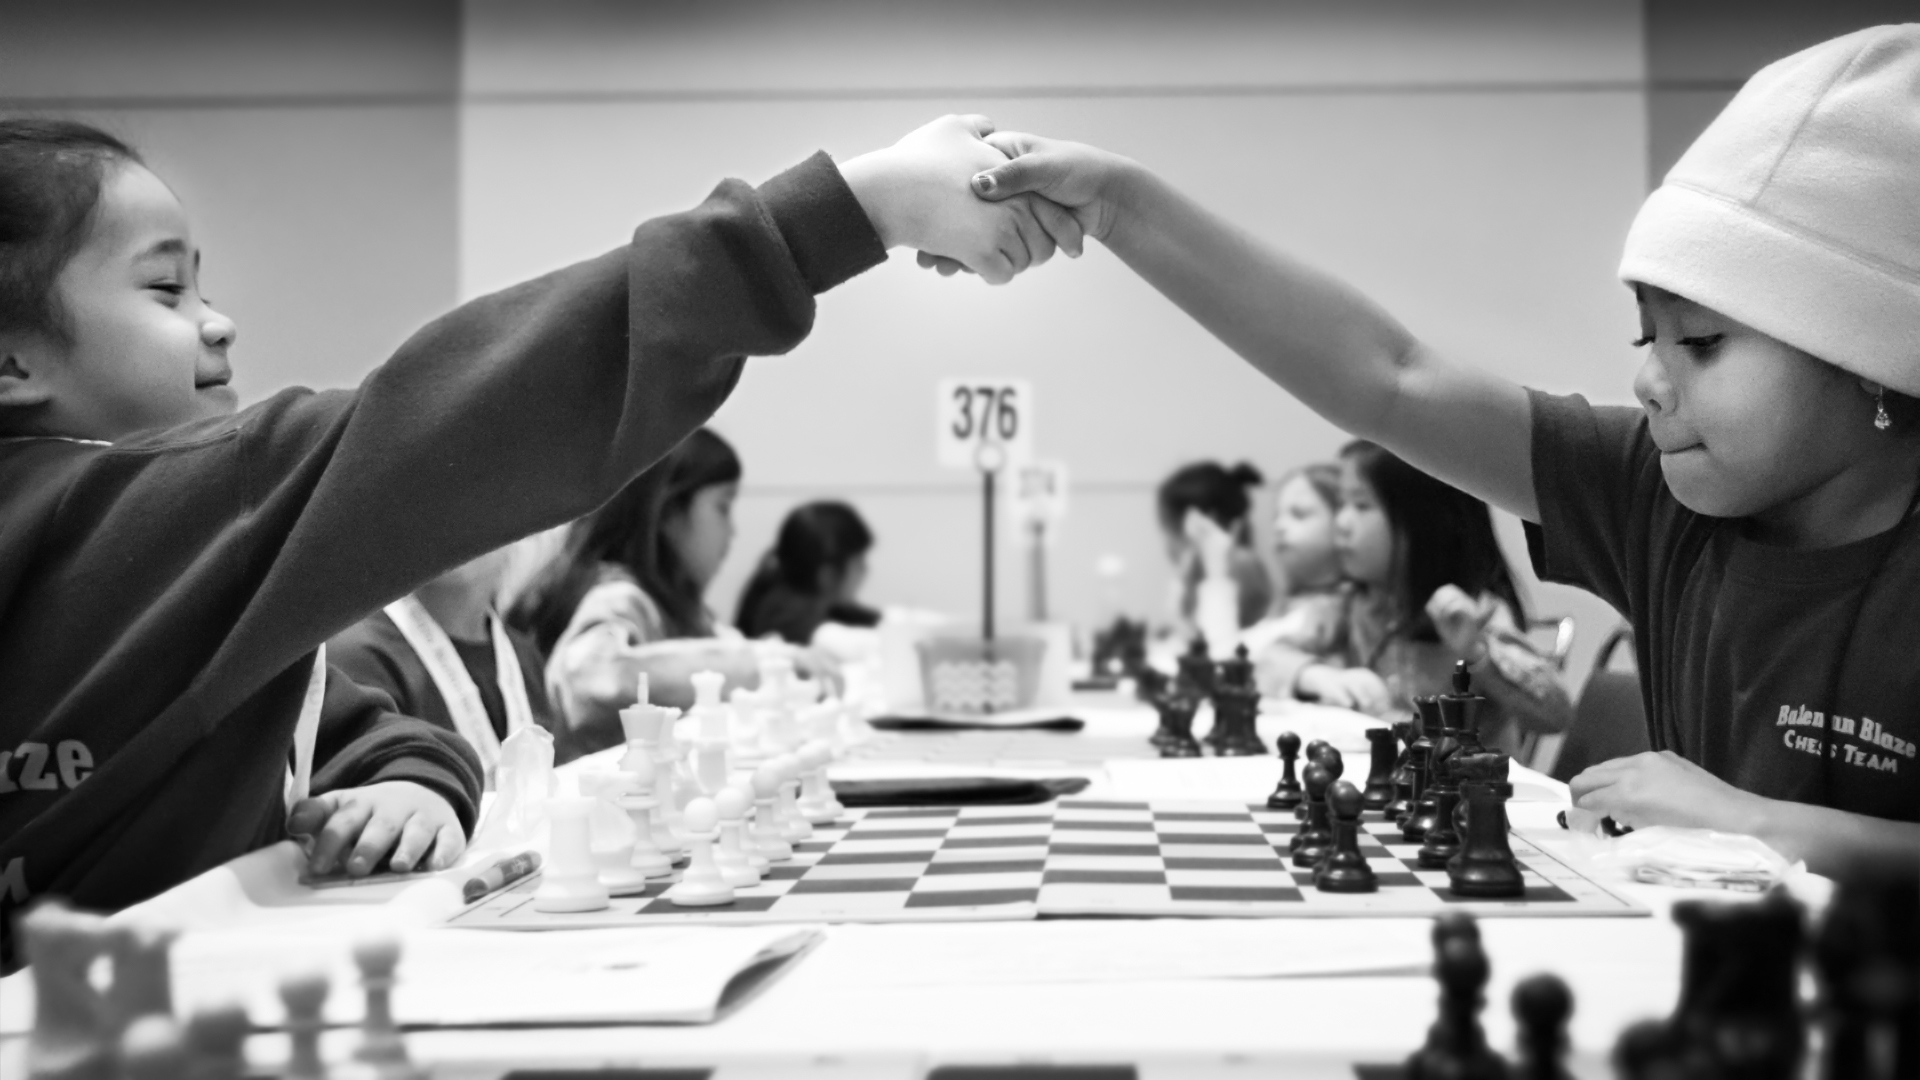 'Girls in Chess' had its exclusive premiere with The New Yorker, August 2018